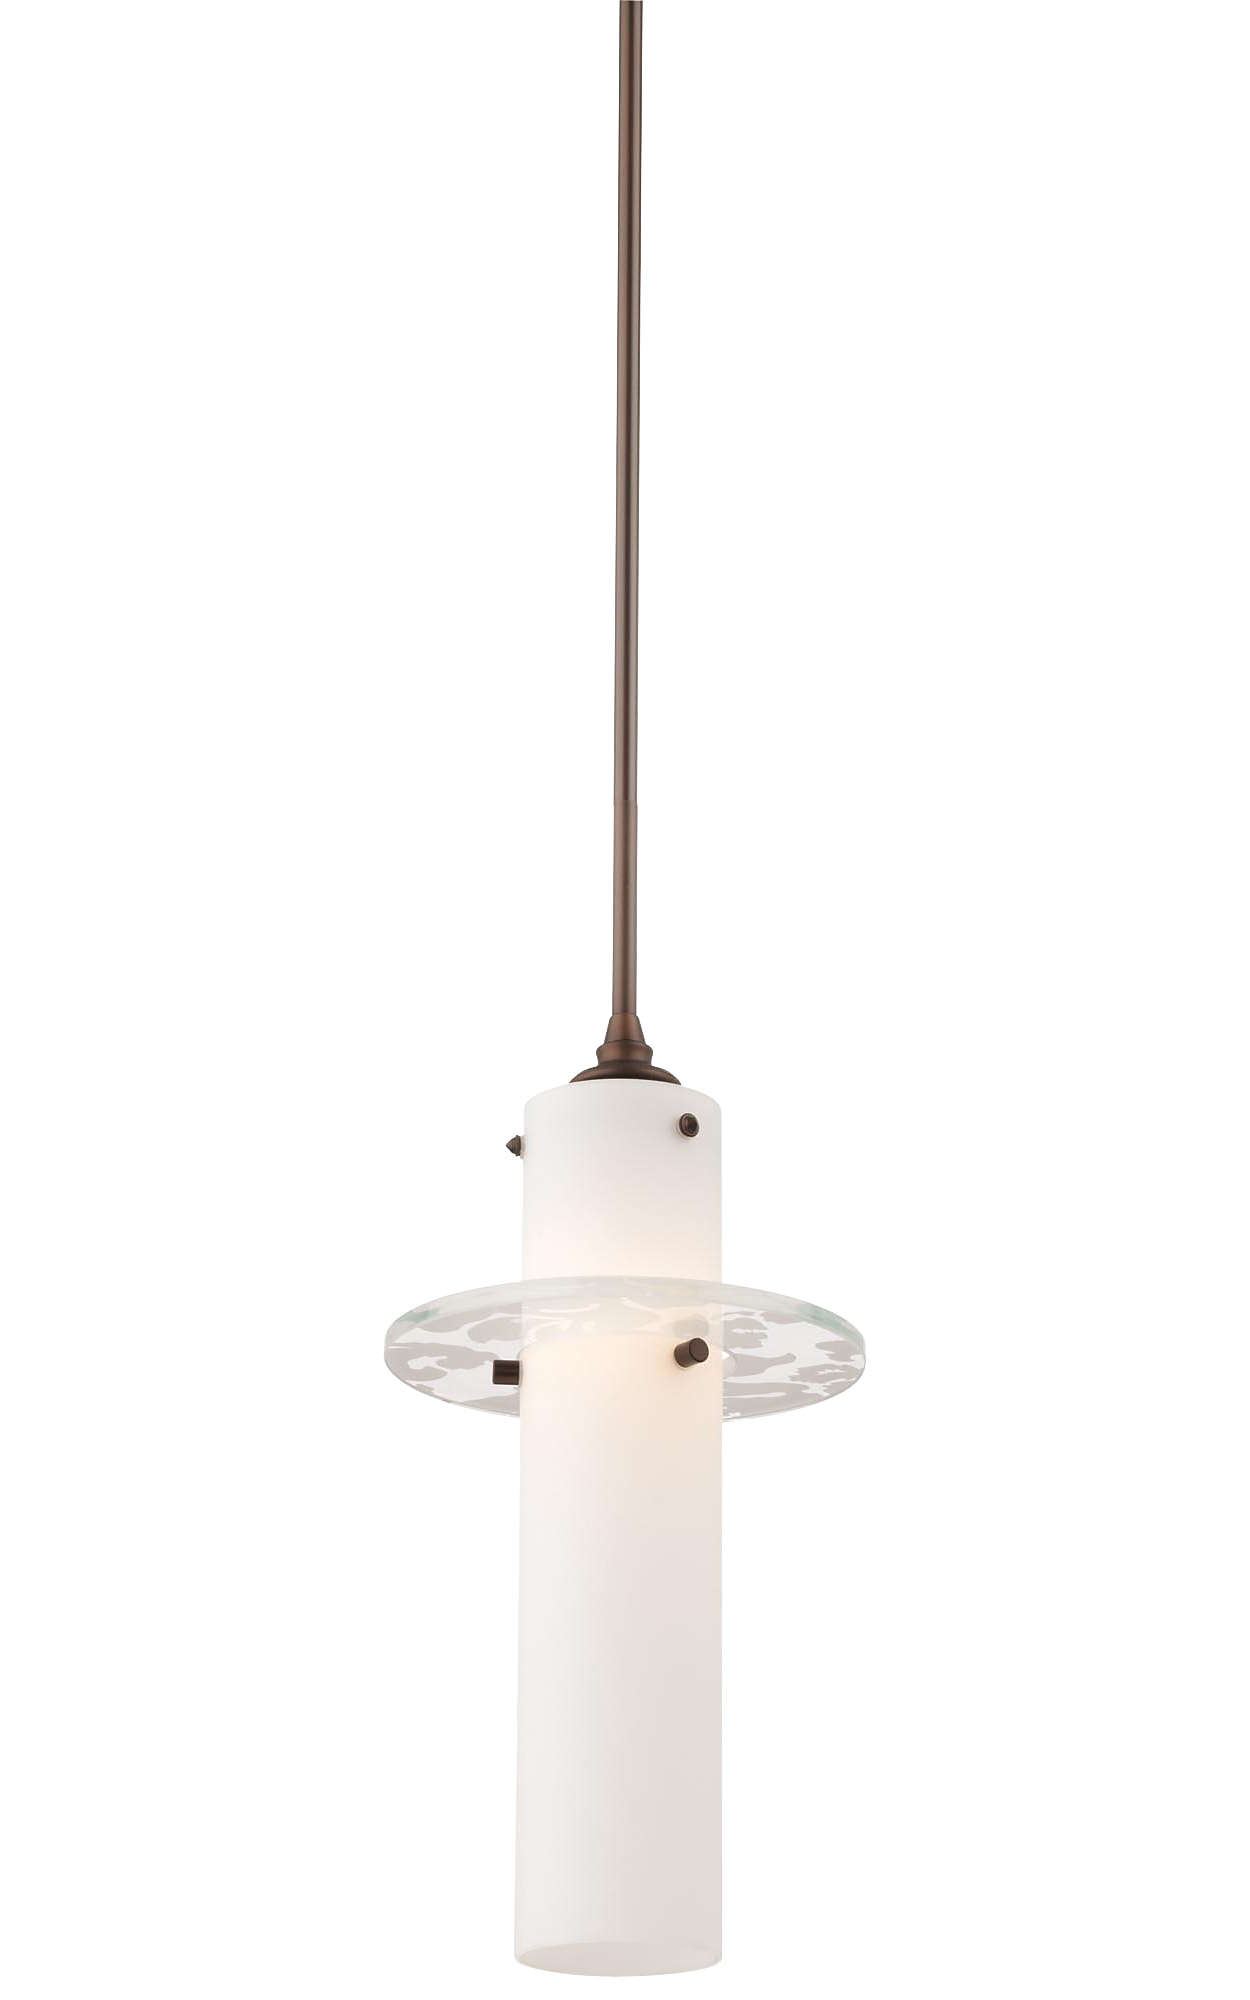 Dana 1-light Pendant in Merlot Bronze finish